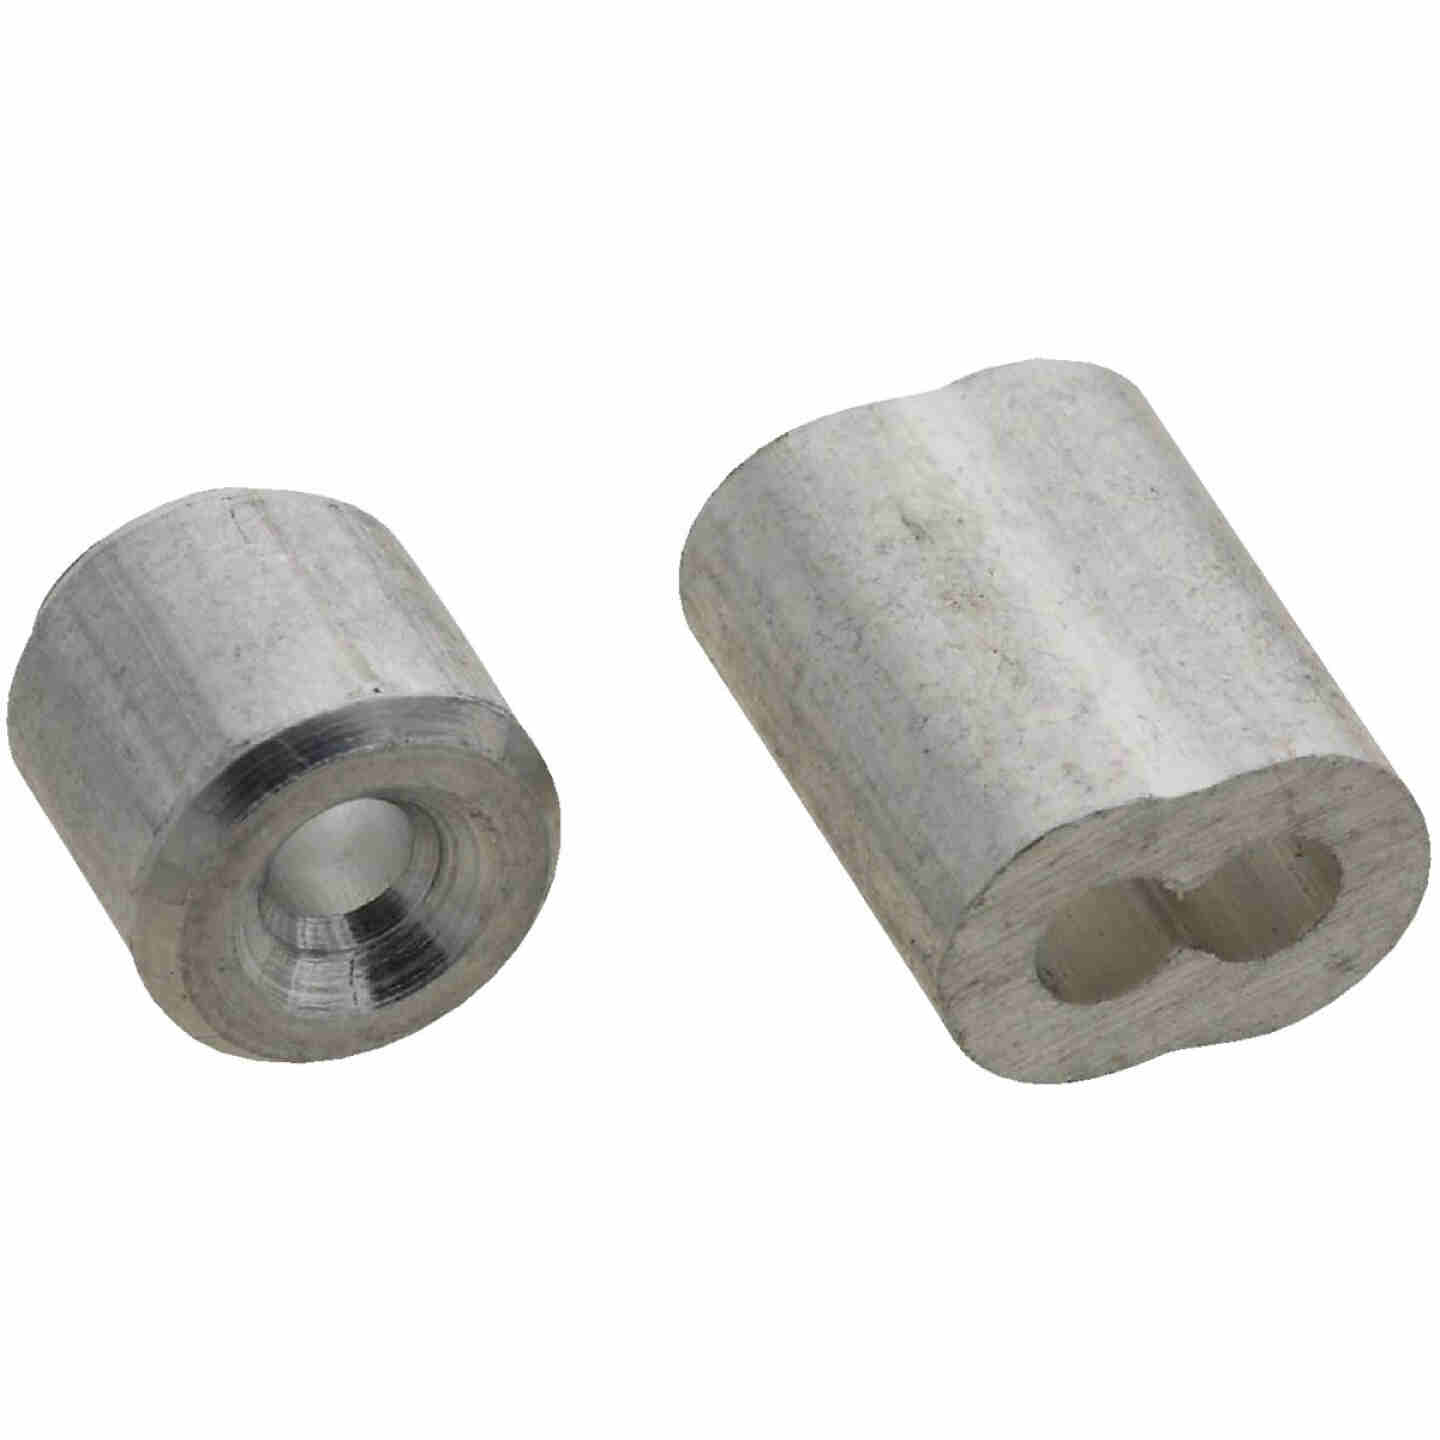 "Prime-Line Cable Ferrules and Stops, 3/32"", Aluminum Image 1"